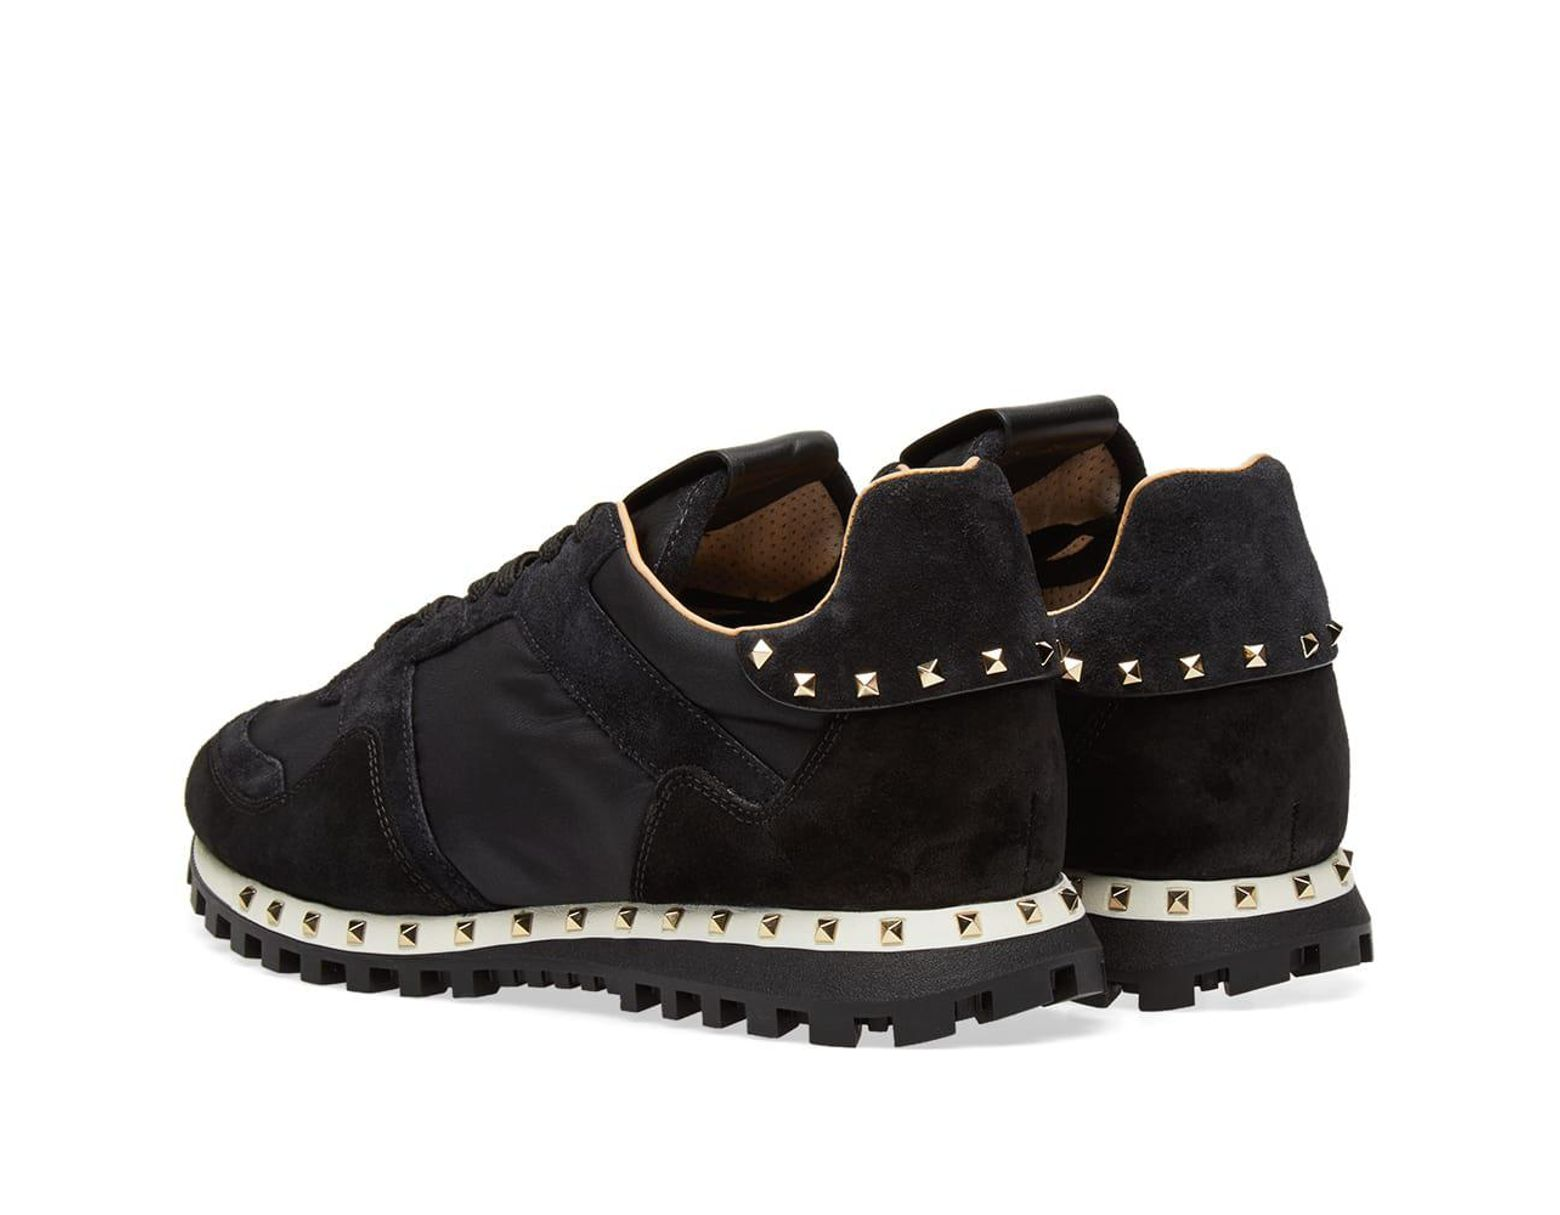 f23bb053872c3 Valentino Camo Stud Sole Rockrunner Sneaker in Black for Men - Save 35% -  Lyst